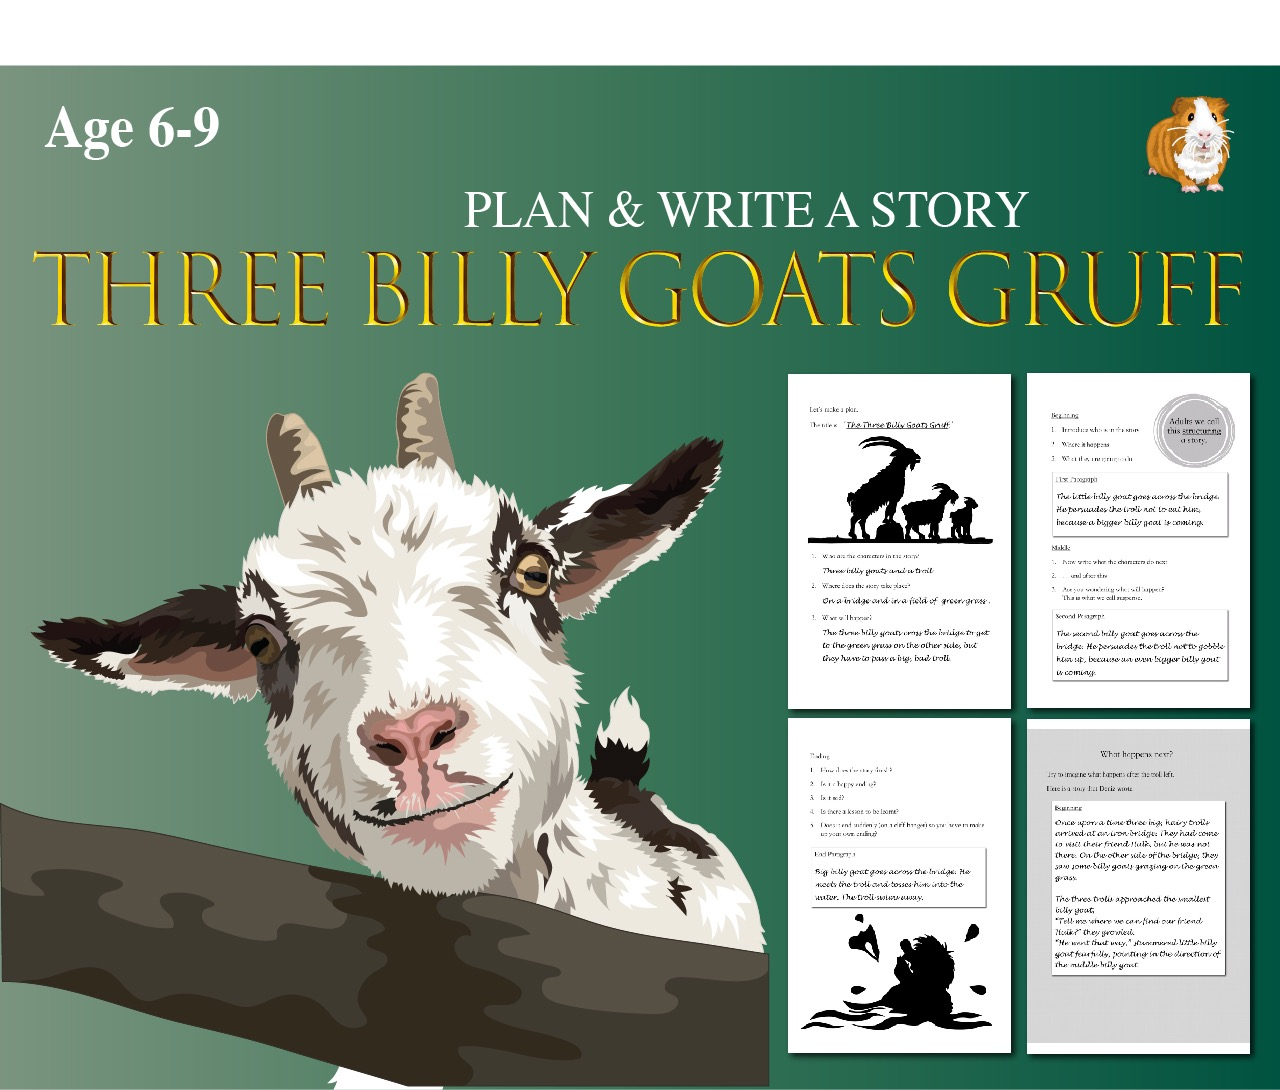 Plan And Write The Story Of The Three Billy Goats Gruff  (6-9 years)